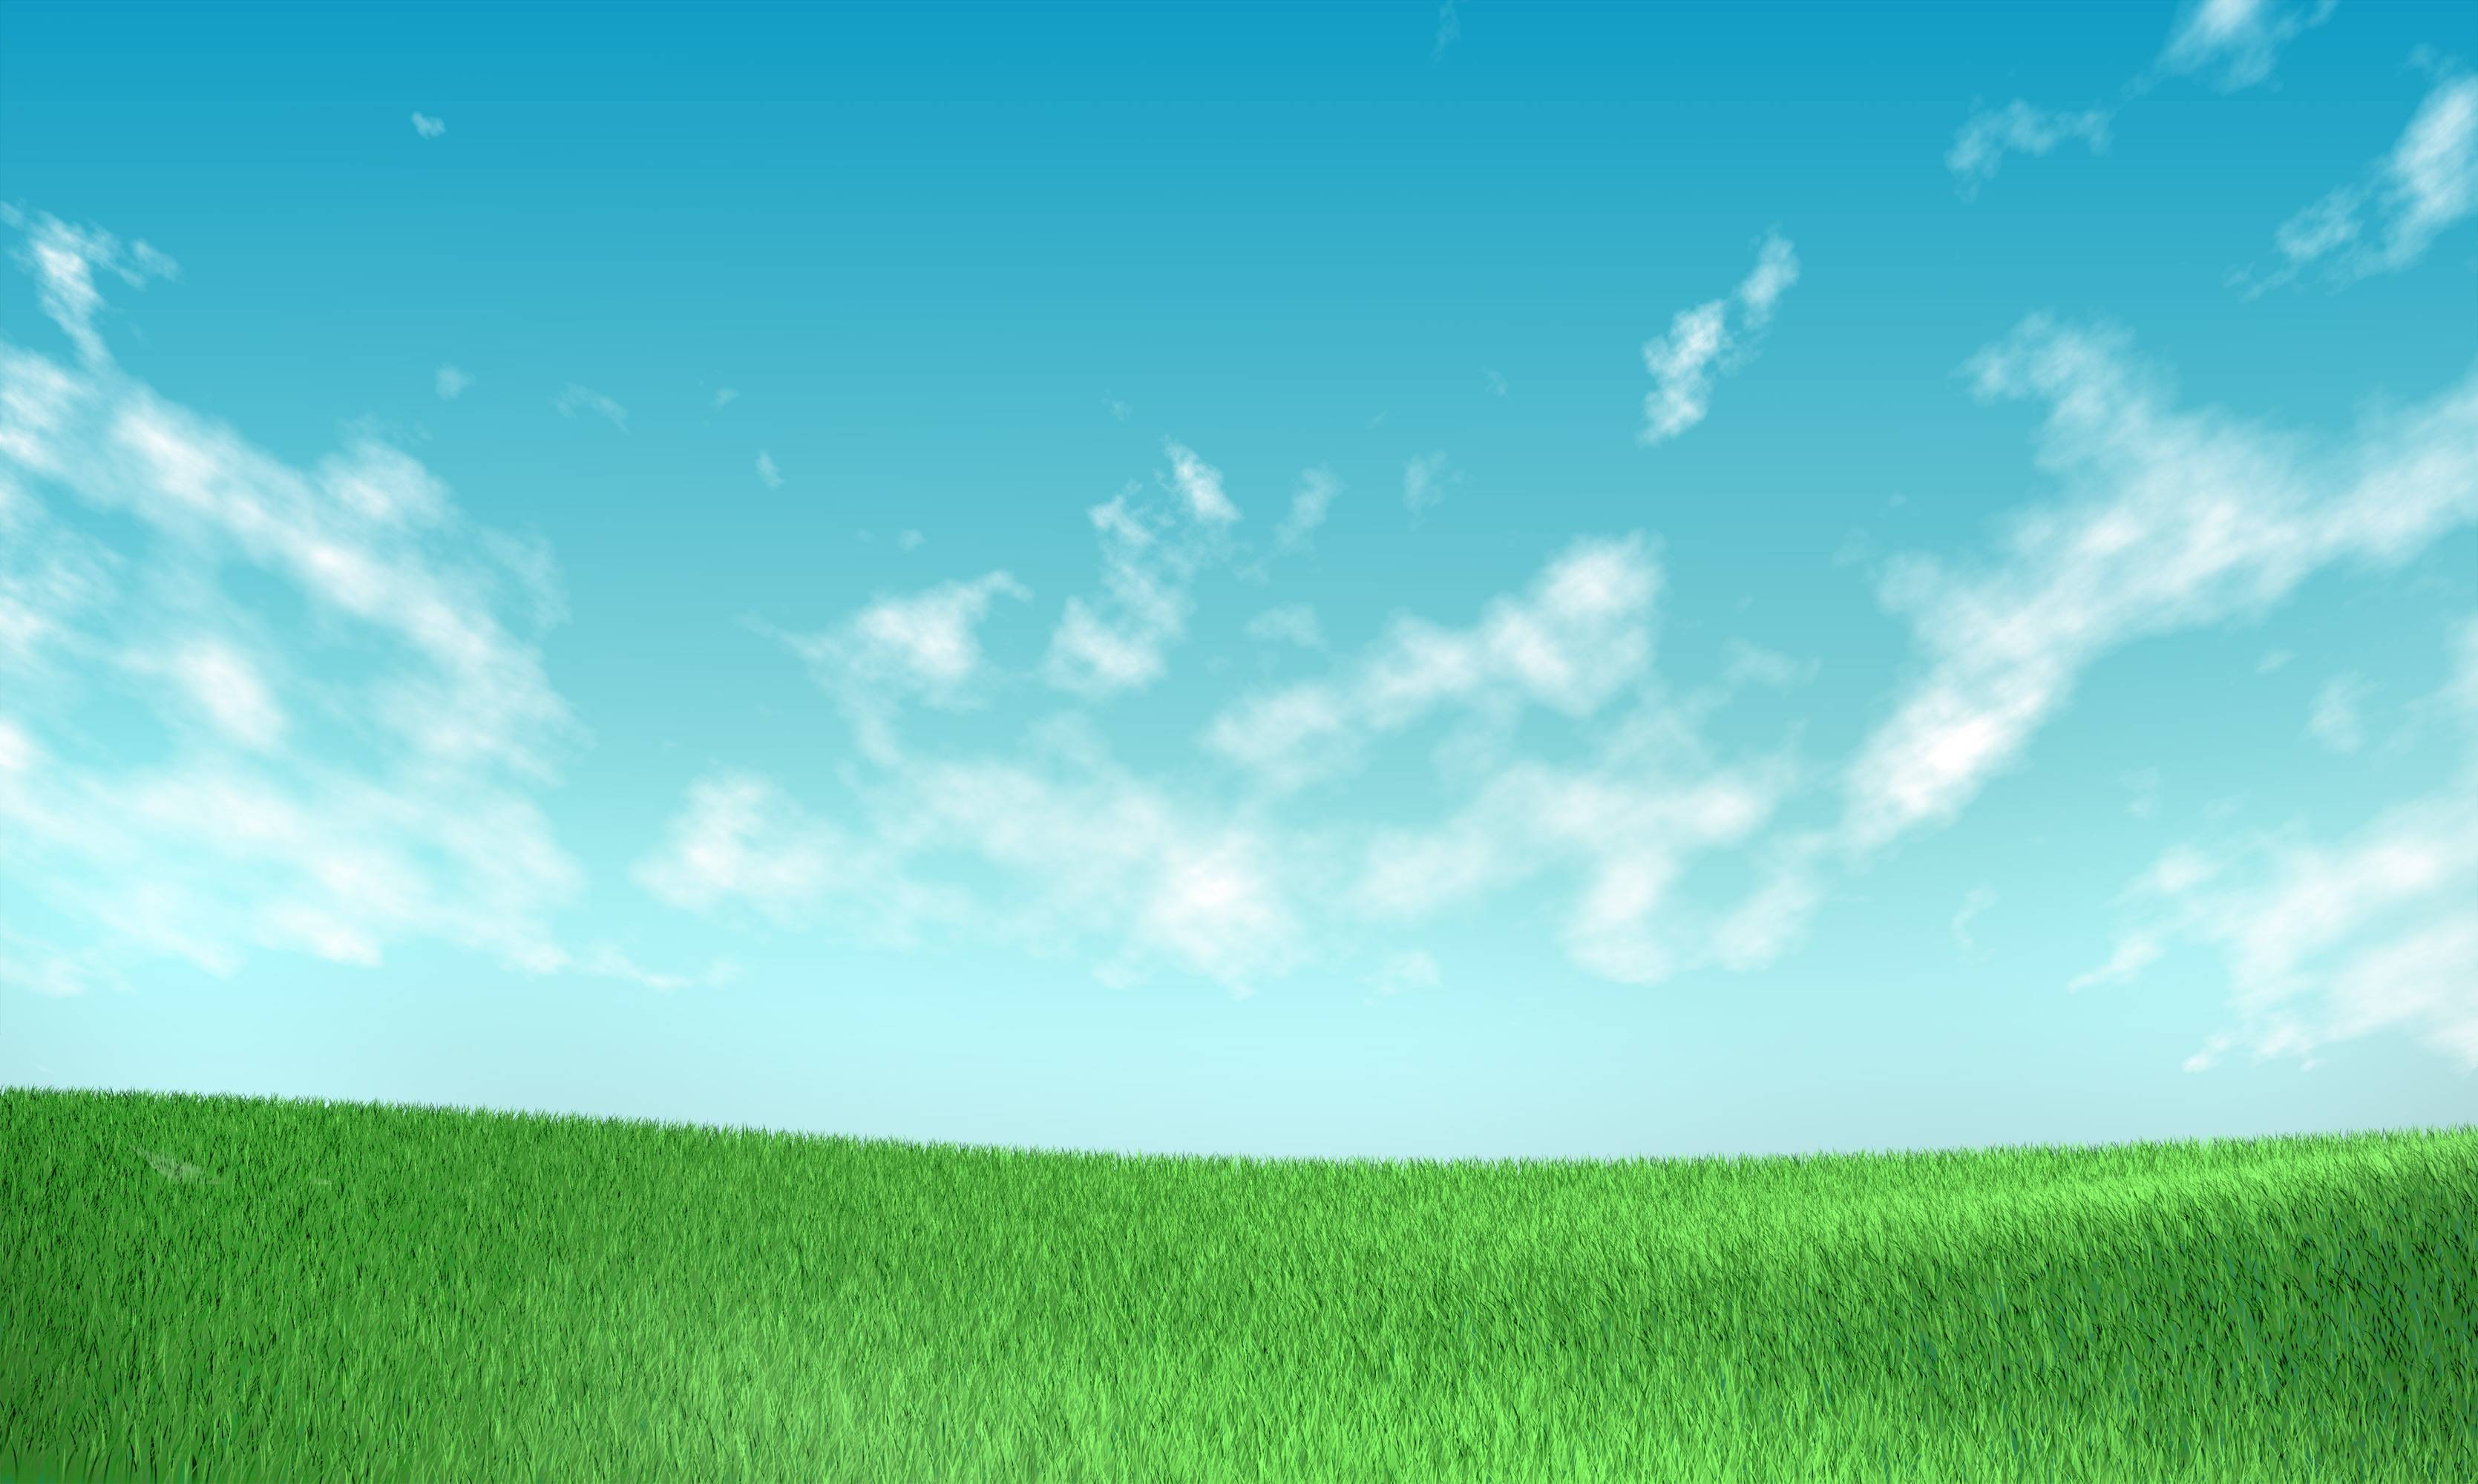 grass and sky backgrounds Wallpapers HD Image 10879